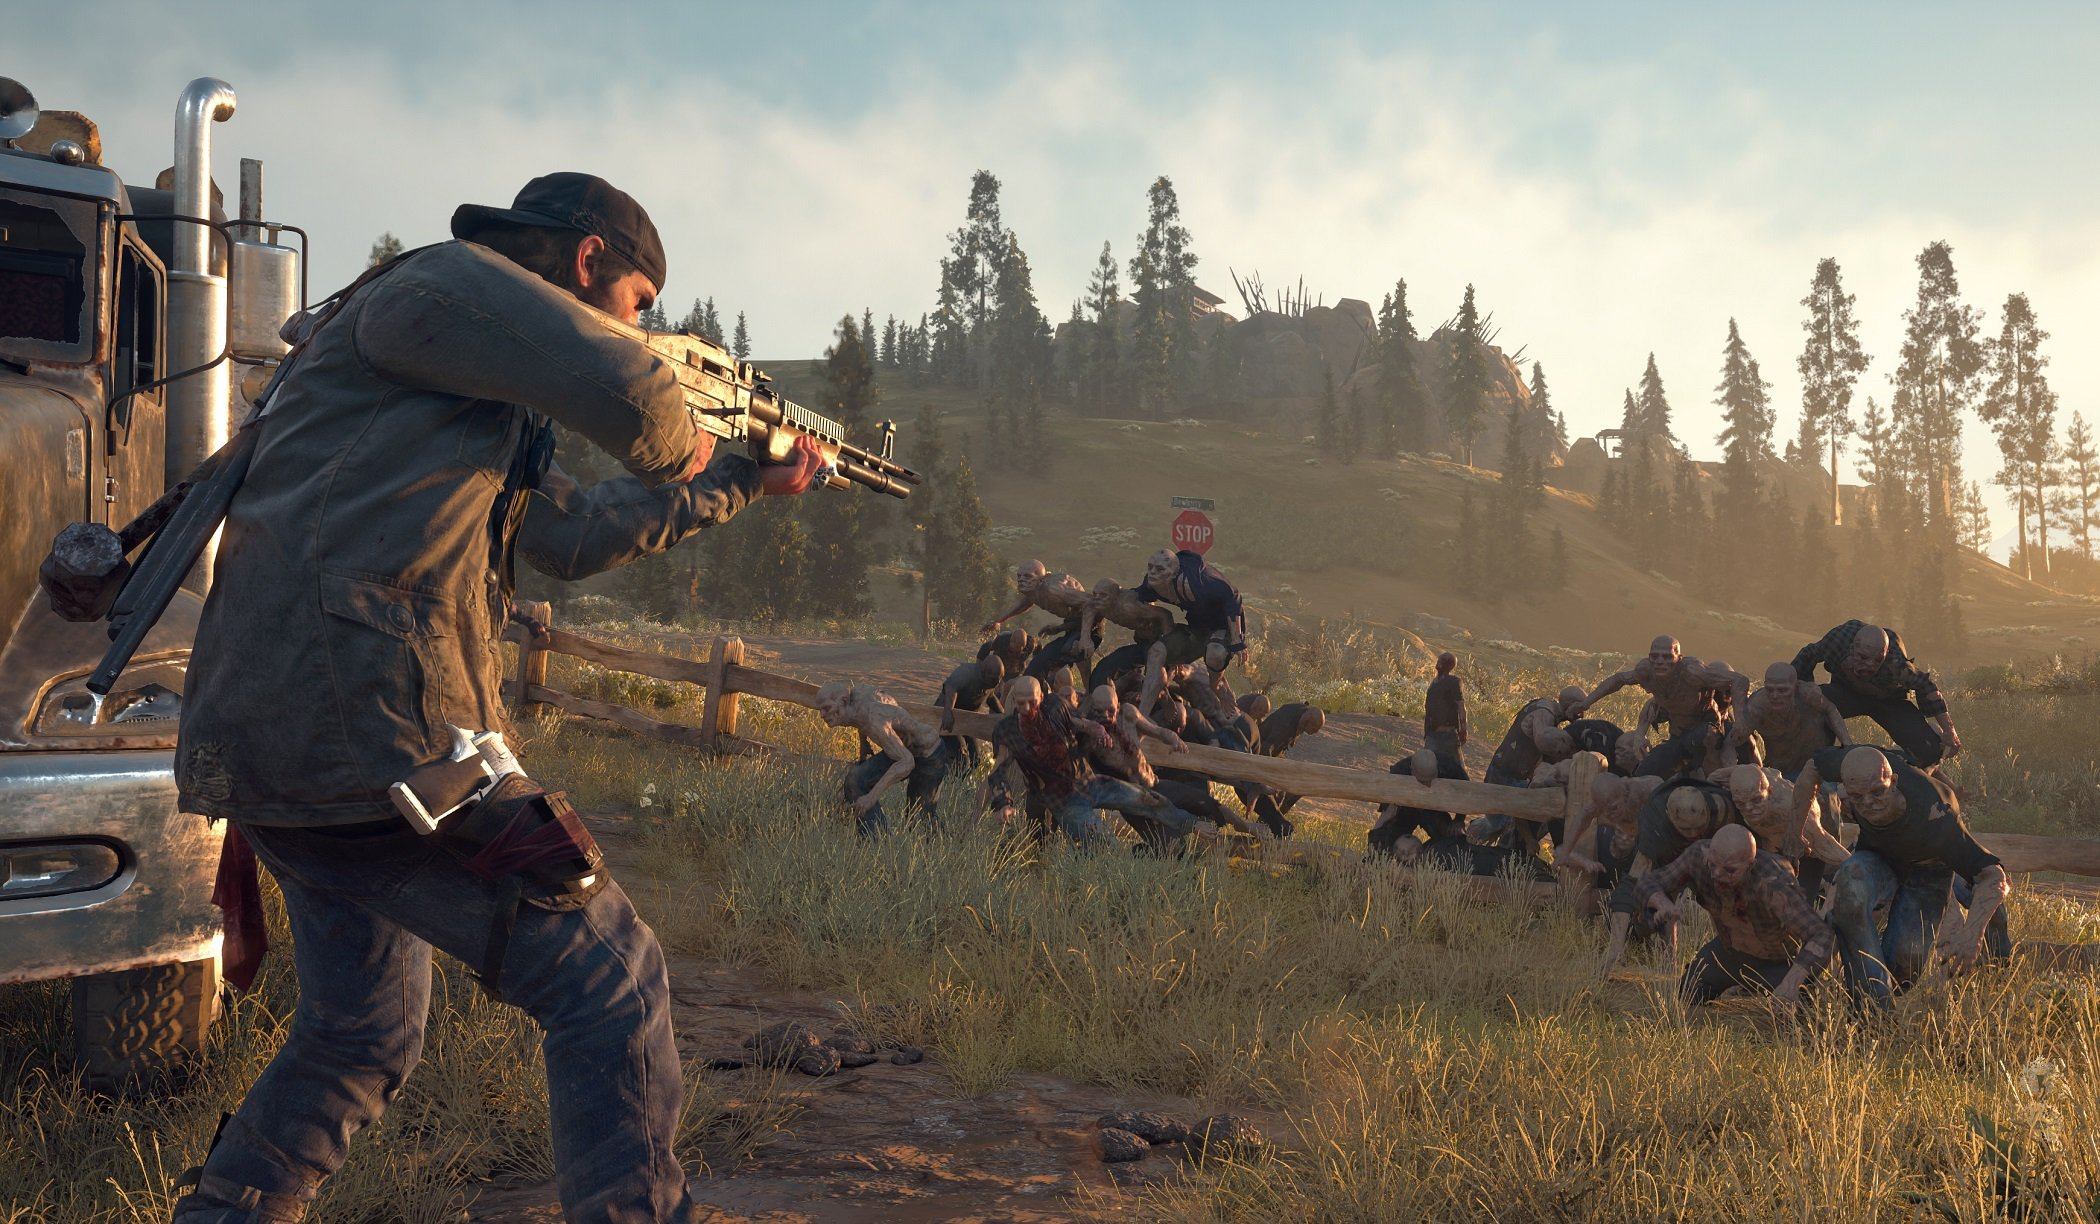 Days Gone will have no co-op multiplayer options available when it releases for PlayStation 4 on April 26.